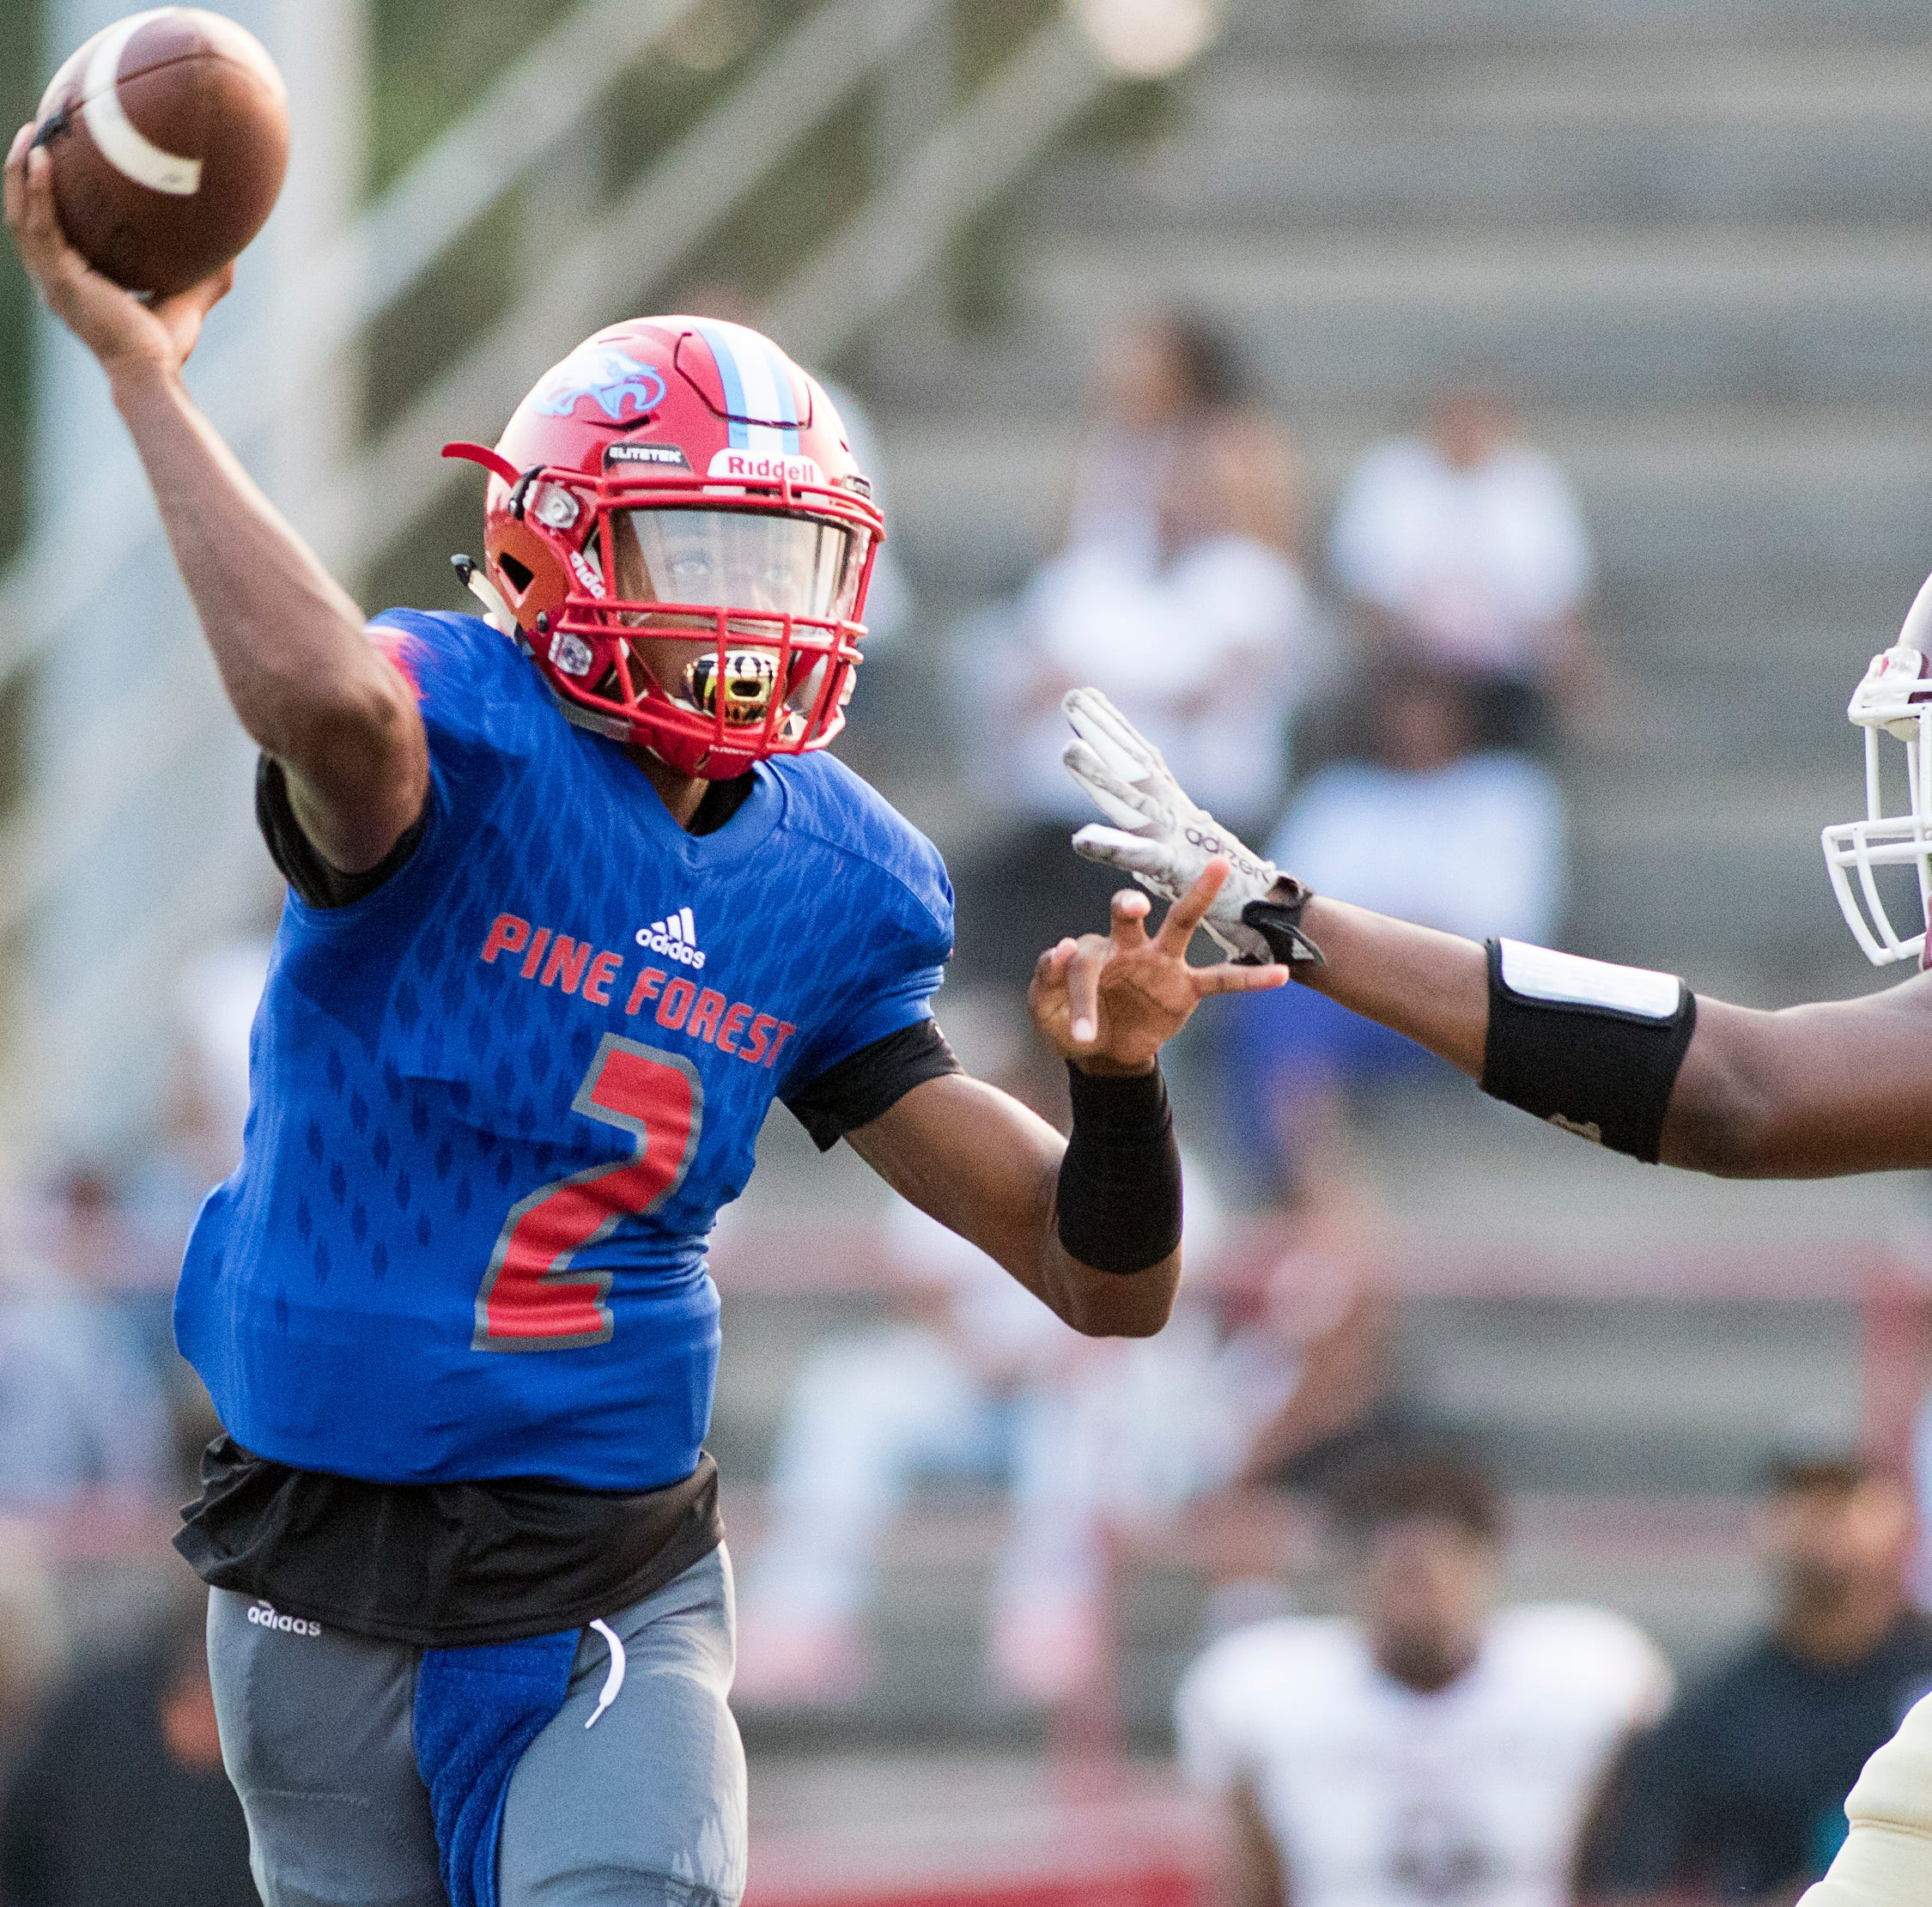 Pine Forest quarterback Clardy garners interest from UWF